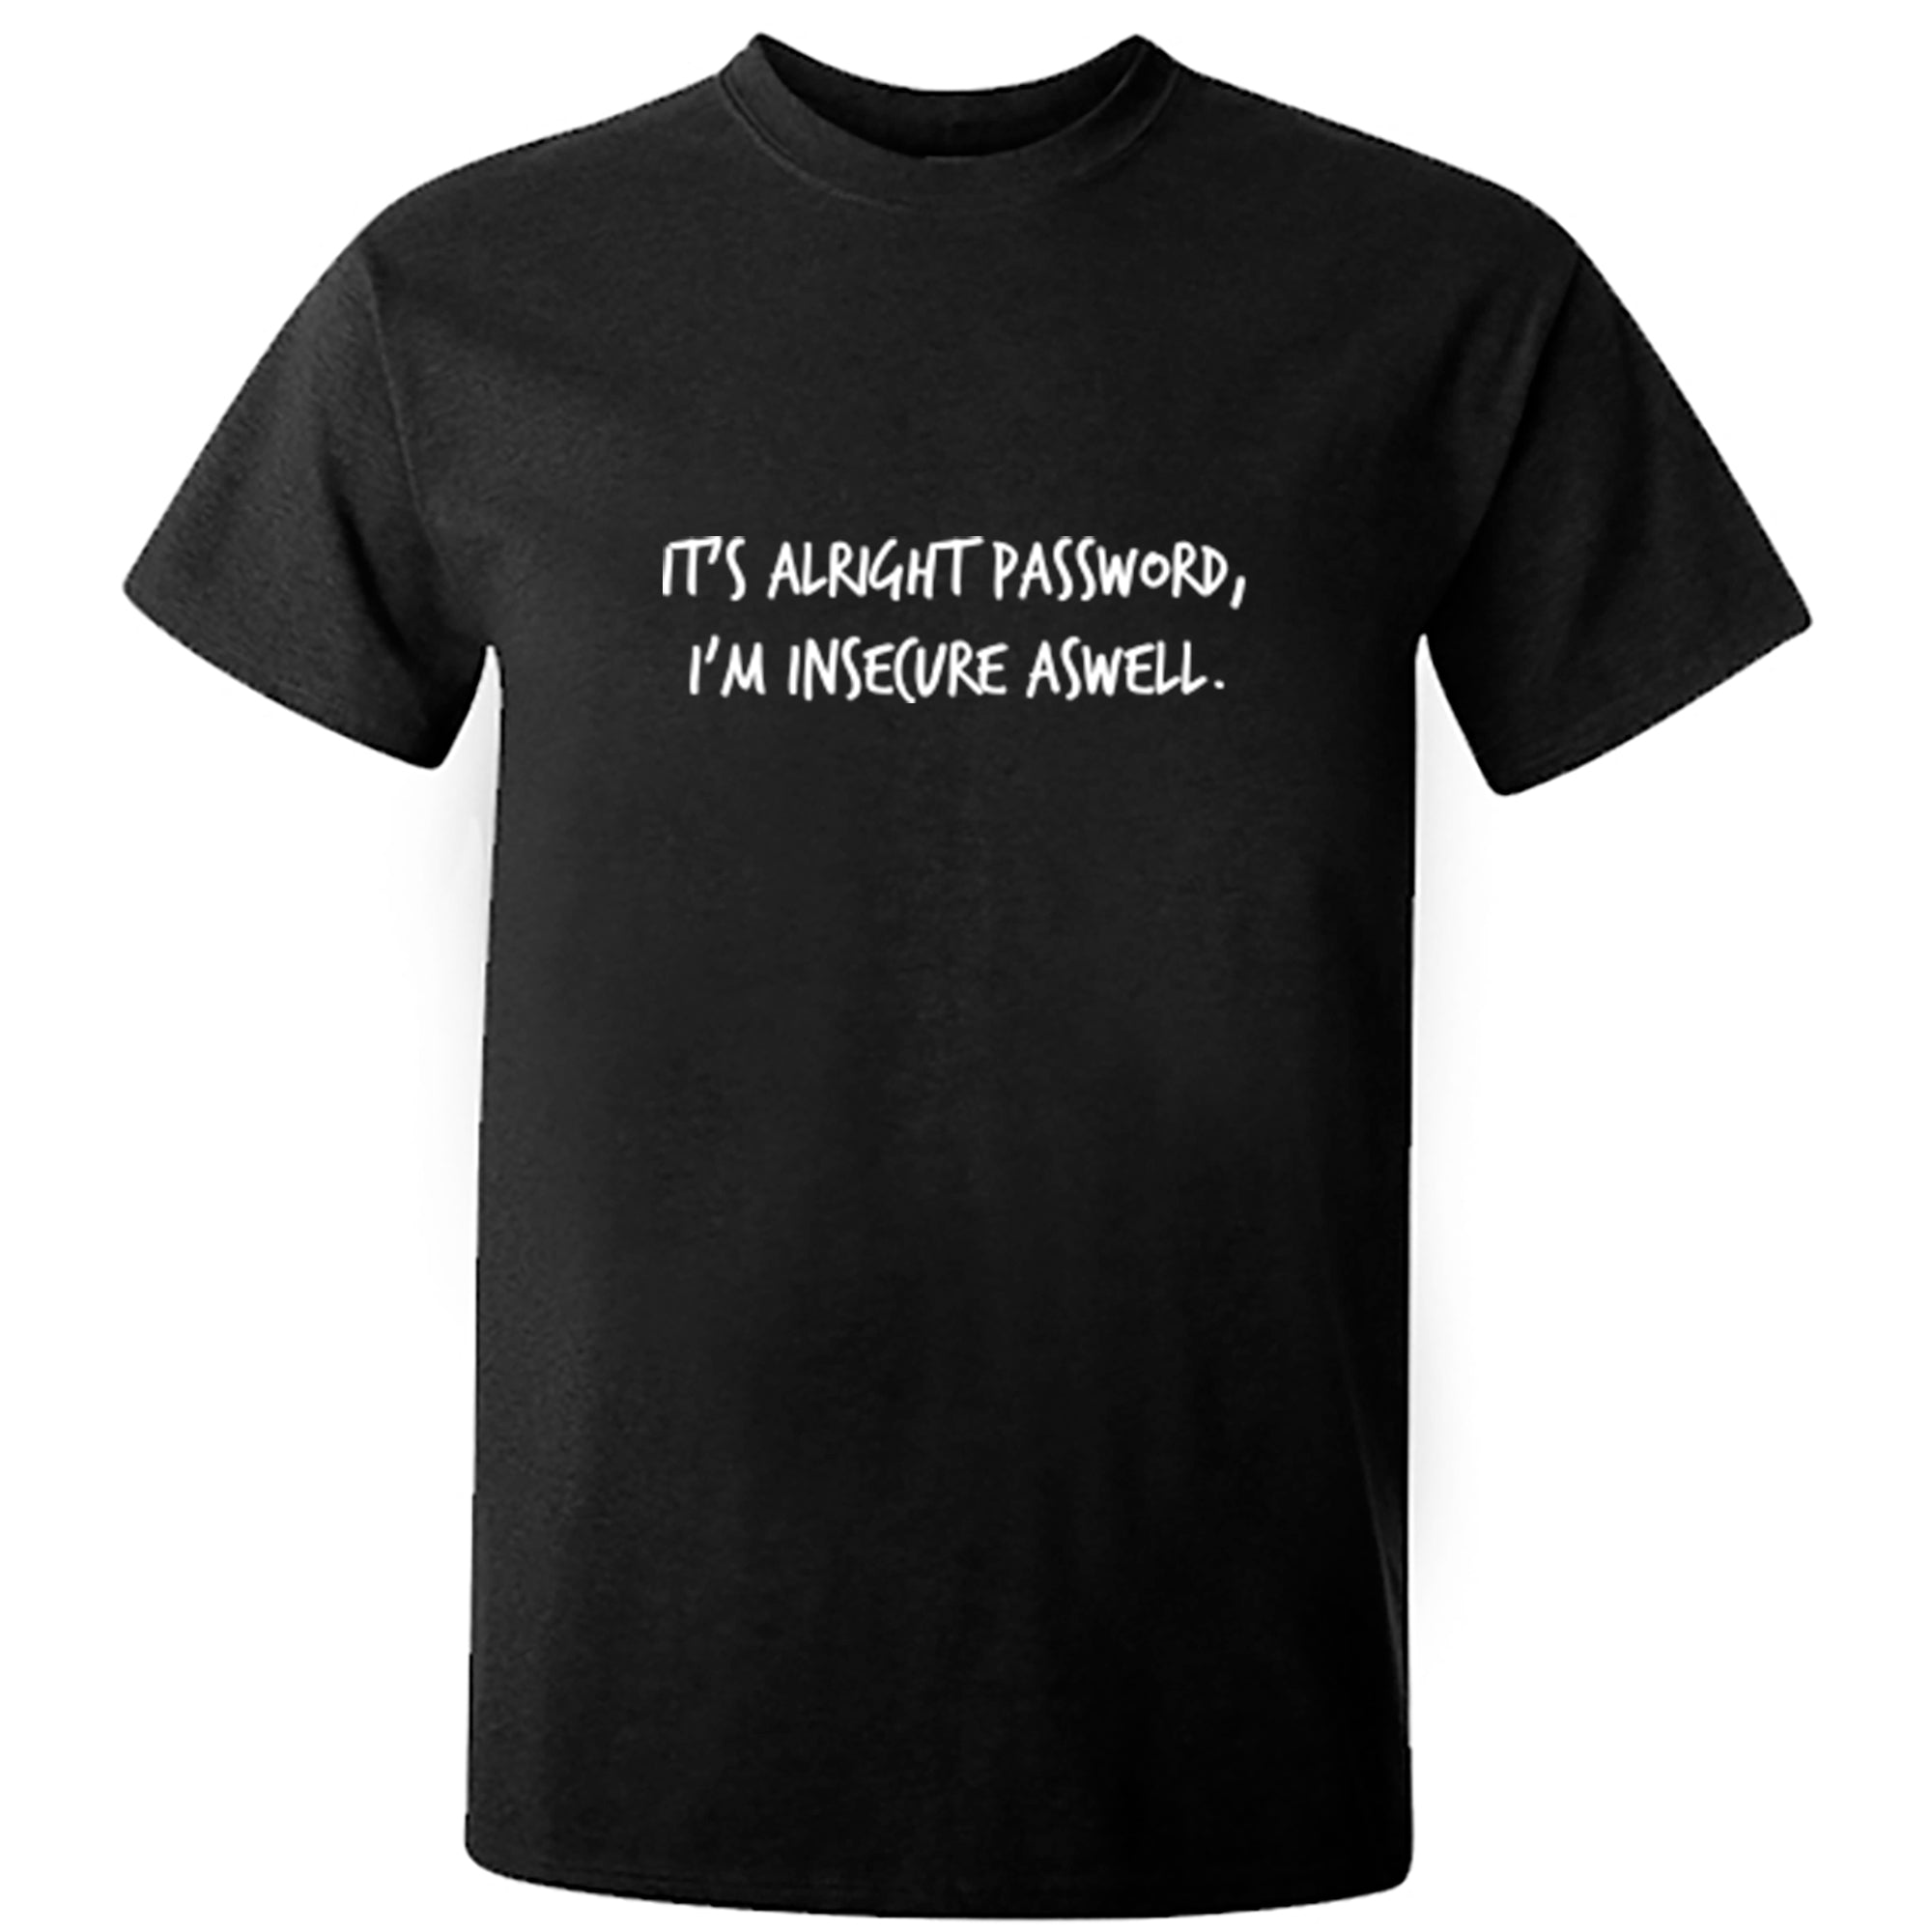 It's Alright Password, I'm Insecure Aswell Unisex Fit T-Shirt S1169 - Illustrated Identity Ltd.